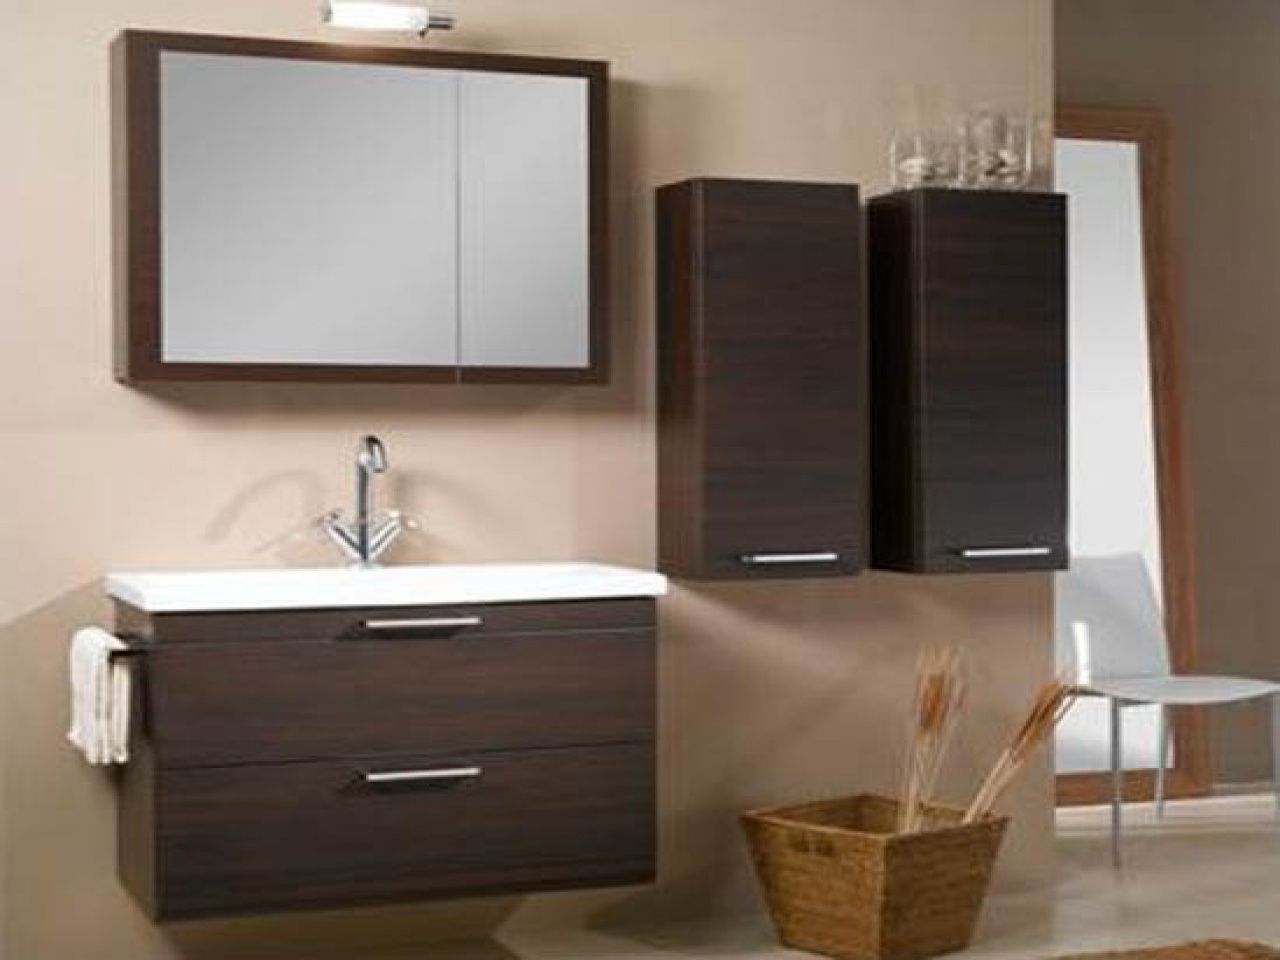 Small modern bathroom vanity interior paint color trends check